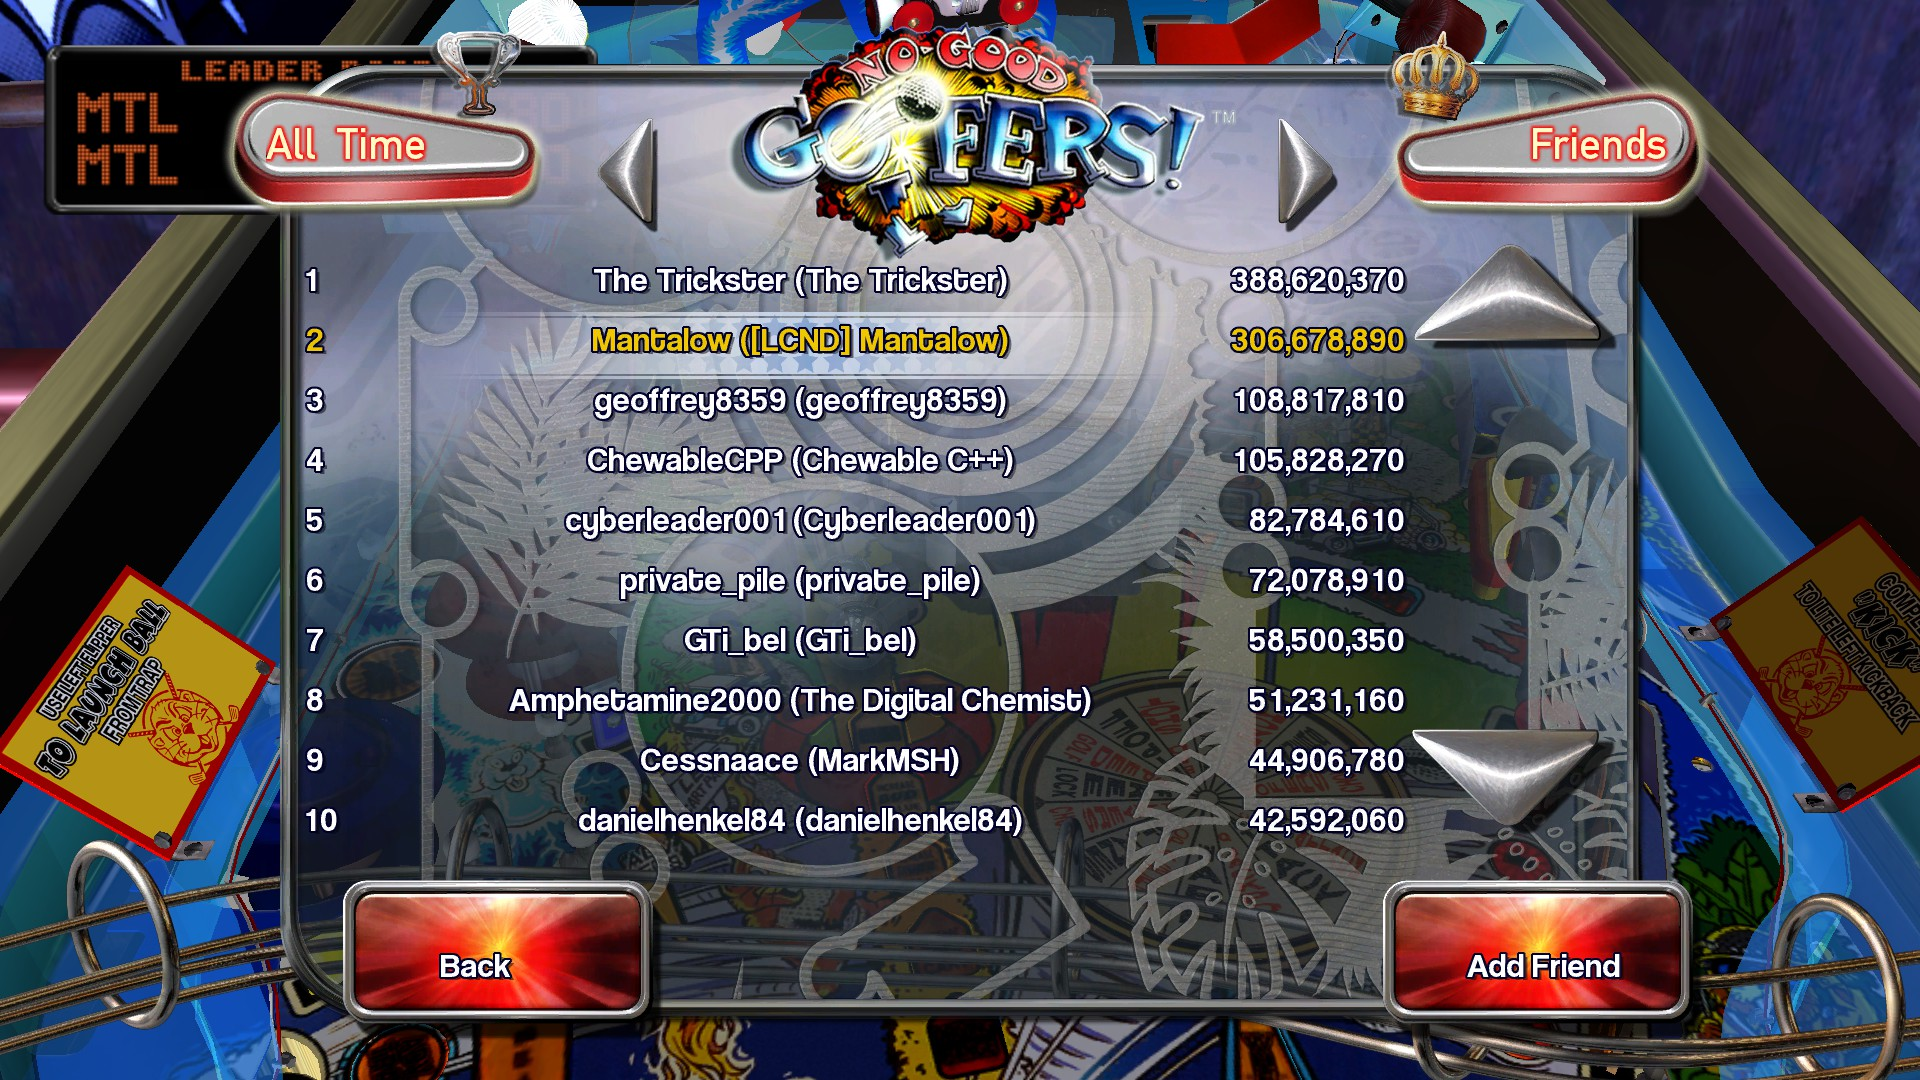 Pinball Arcade: No Good Goofers 306,678,890 points